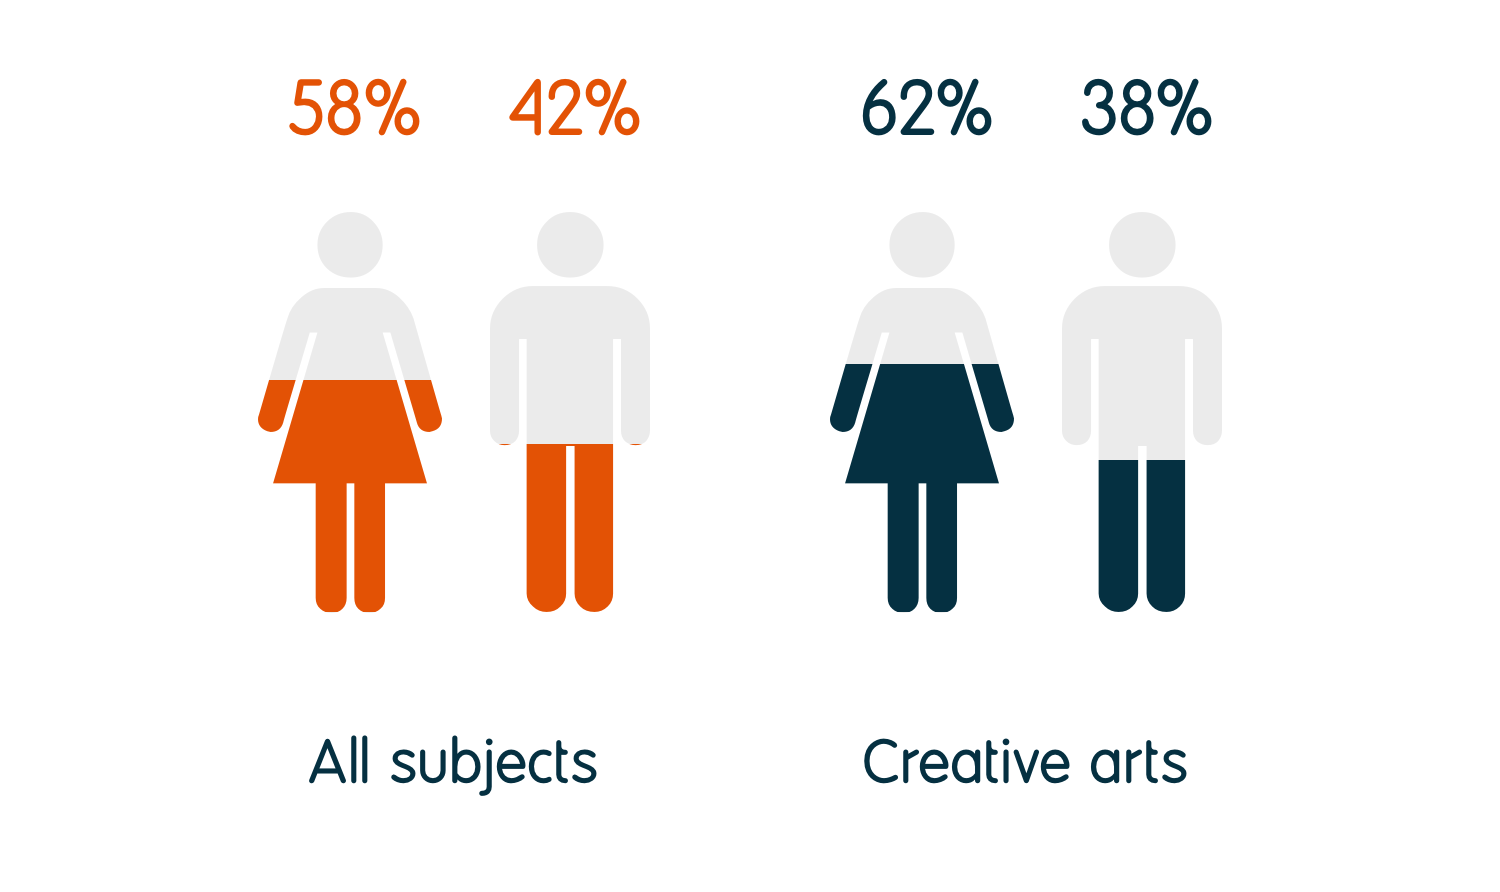 62% of creative arts graduates identify as female and 38% as male, compared to 58% female and 42% male for all graduates.